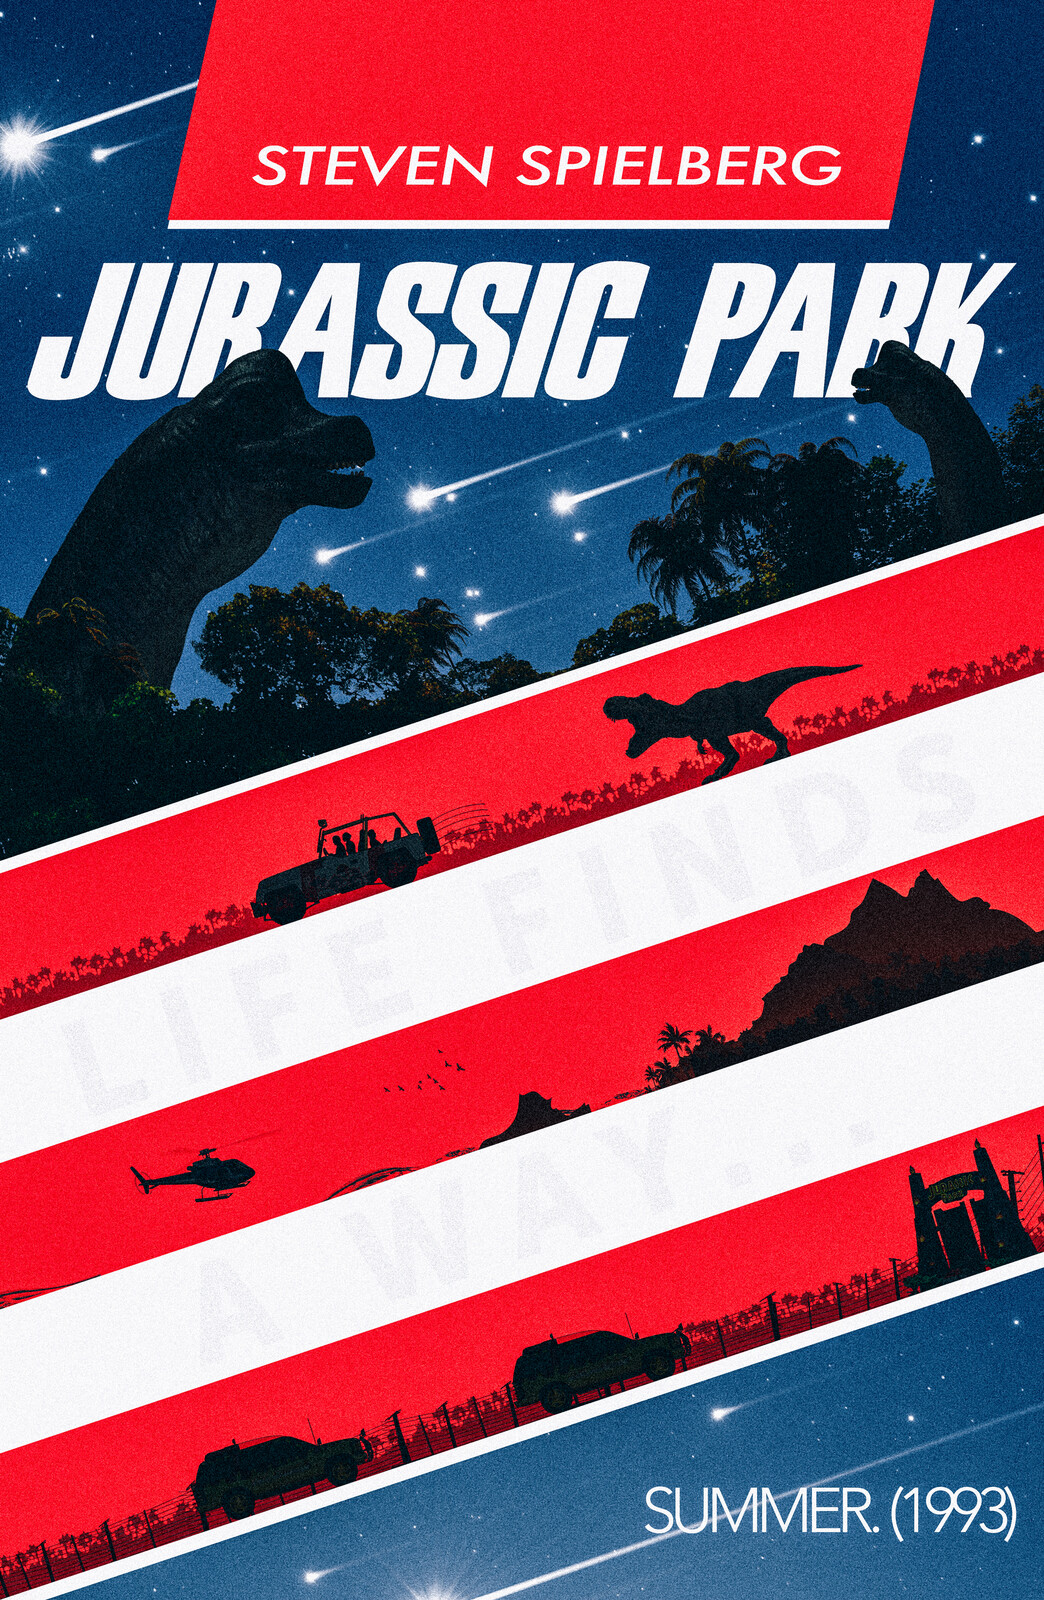 Jurassic Park - Alternate Barbasol themed Movie Poster - Neemz, The Movie Poster Guy